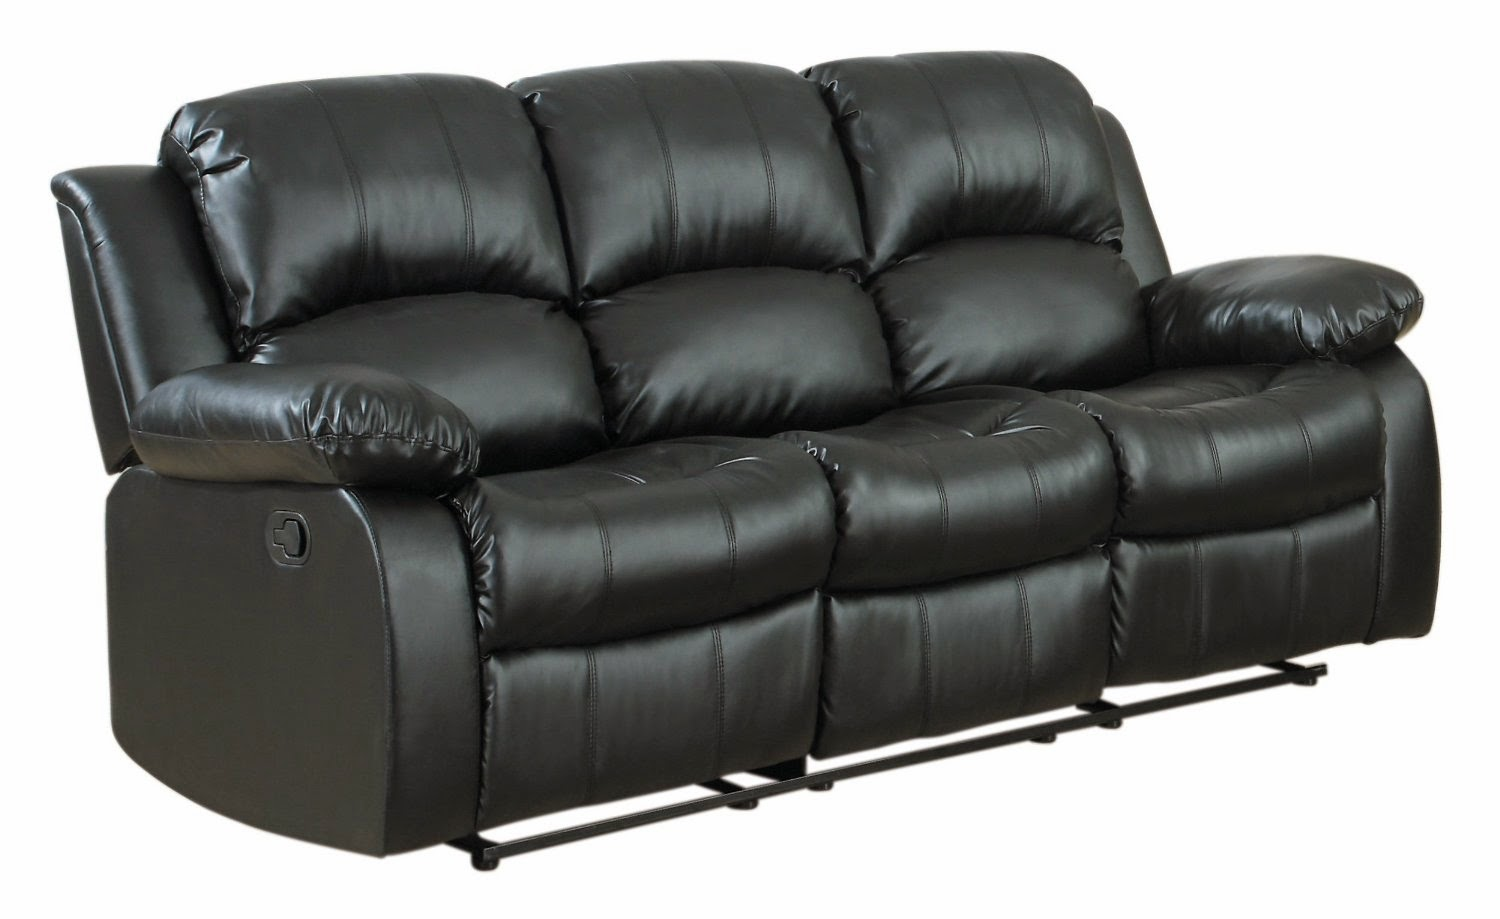 Top Seller Reclining And Recliner Sofa Loveseat: Power